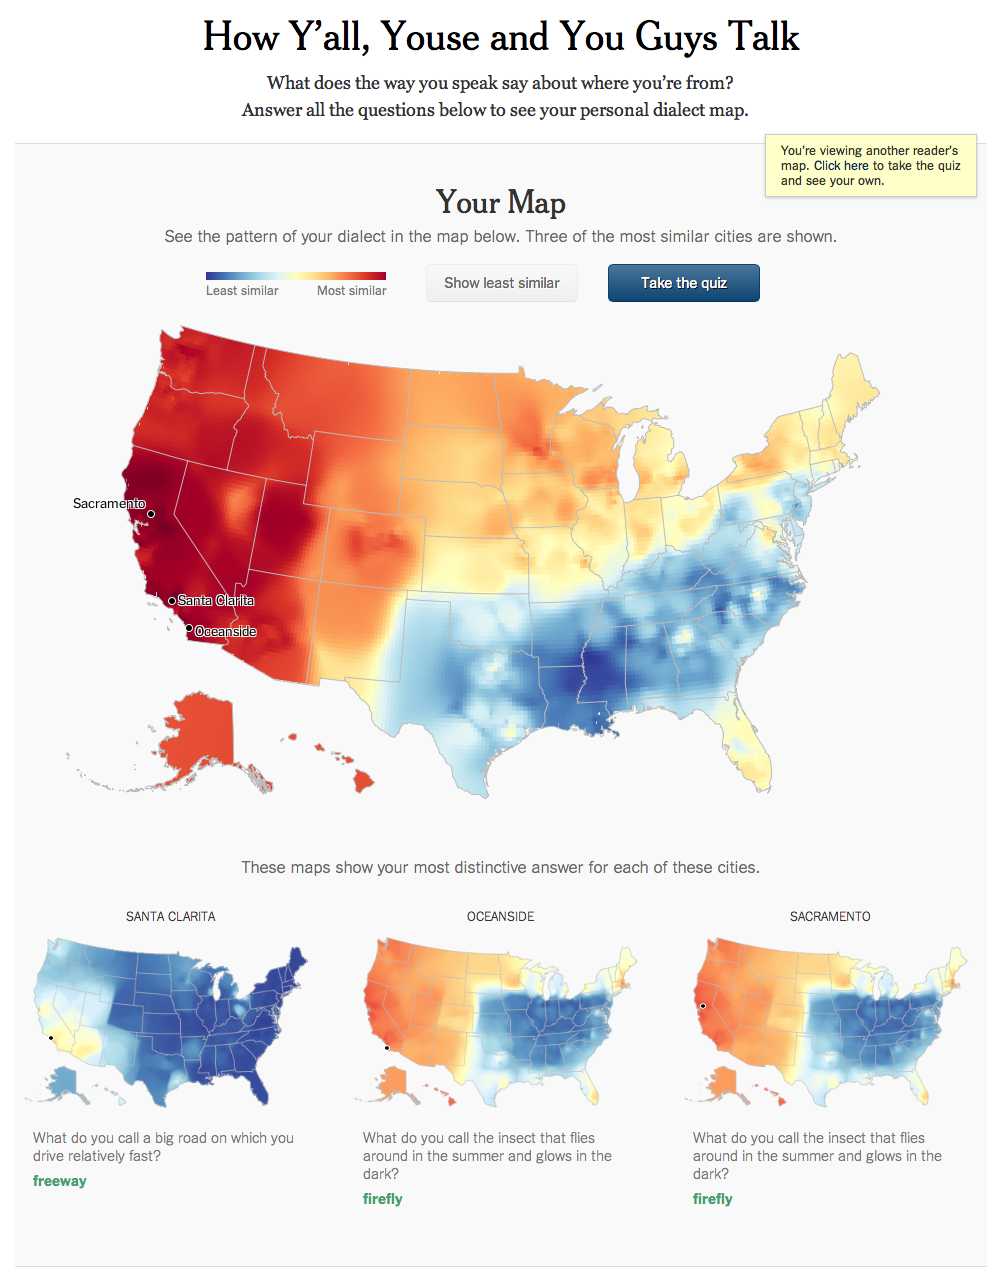 Your personal dialect map - Hither & Thither on